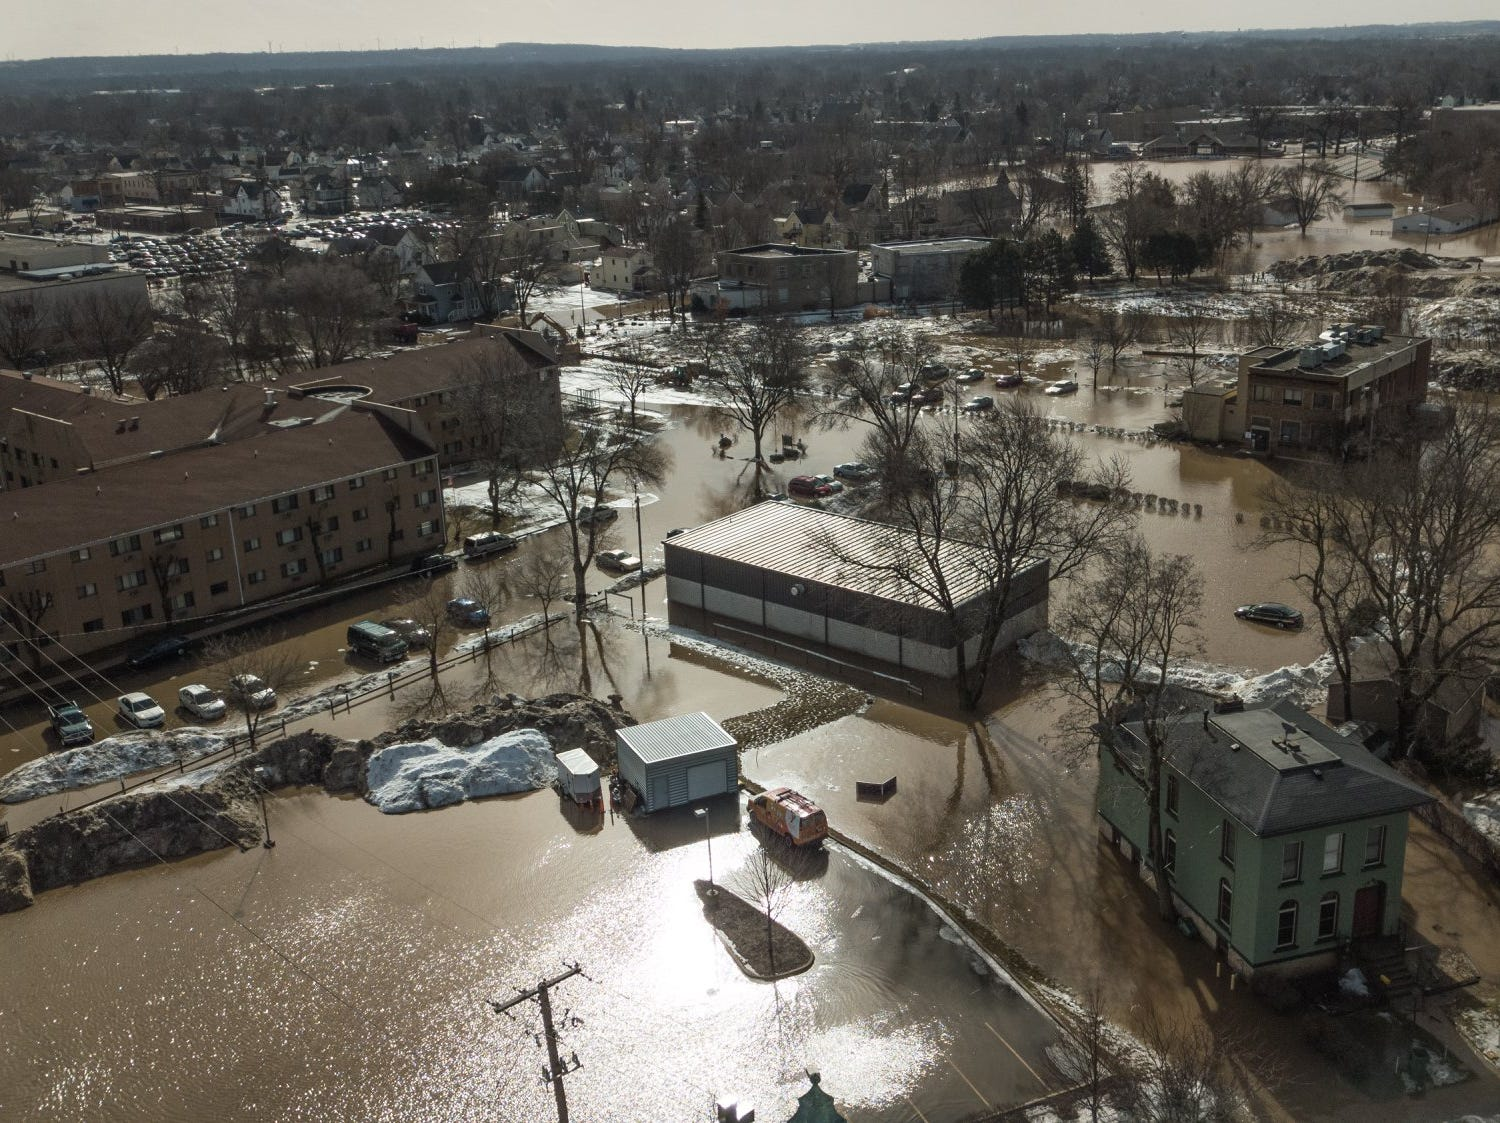 Ice jams caused water to spill over the shores of the Fond du Lac River on Thursday, March 14. Western Avenue west of the Fond du Lac County Sheriff's Office is pictured at around 11 a.m.